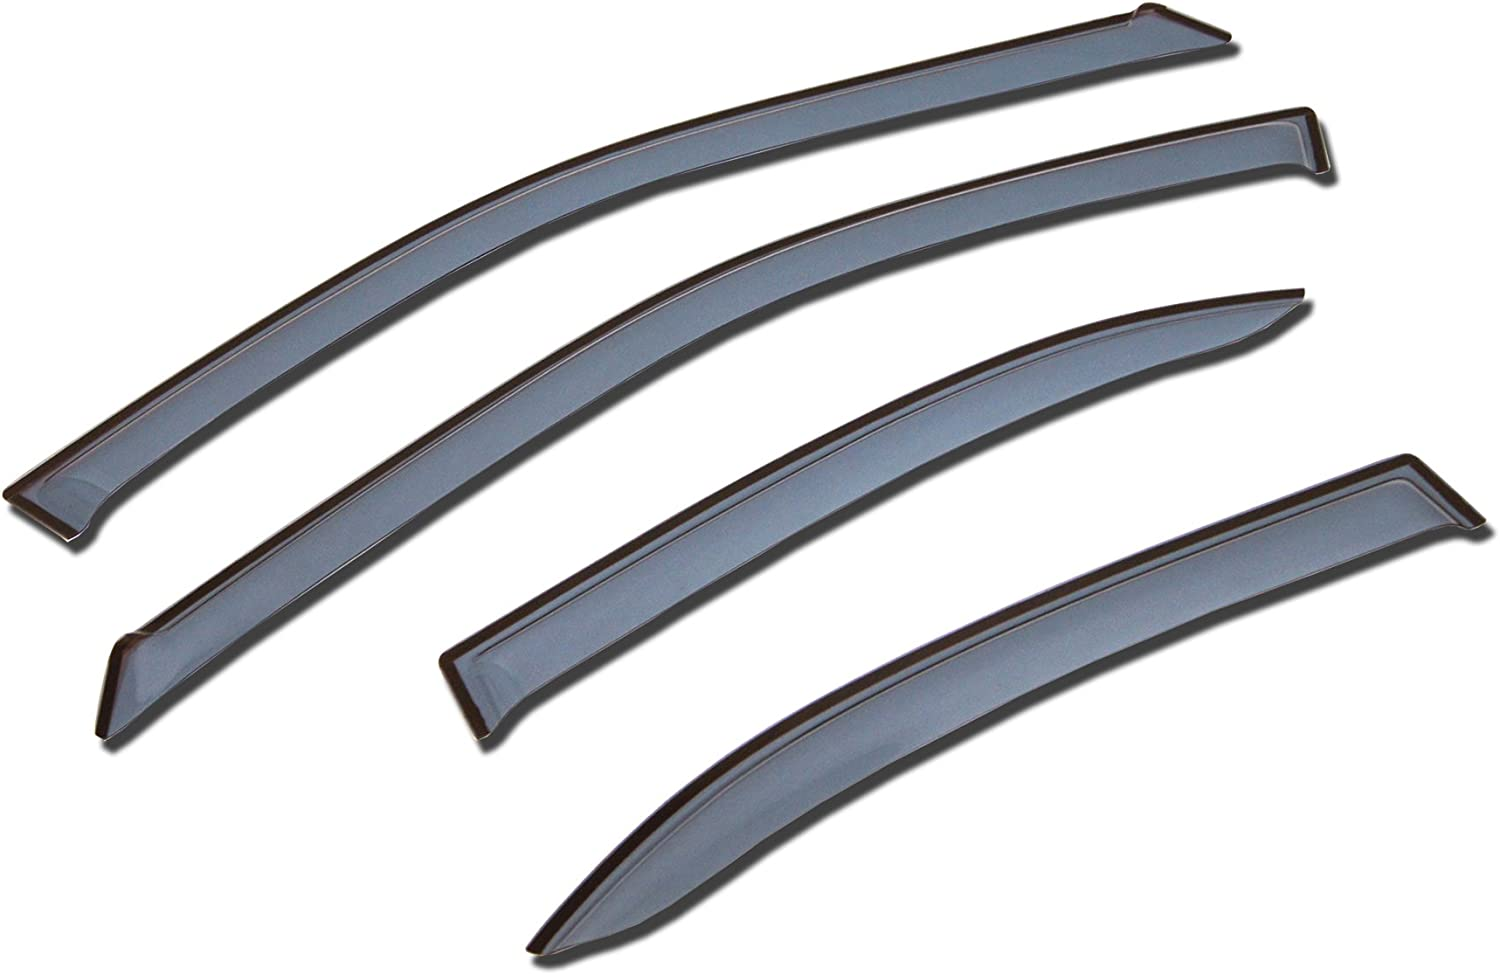 TuningPros LGWV-182-2 Out-Channel Window Visor Deflector Rain Guard Light Grey 4-pc Set